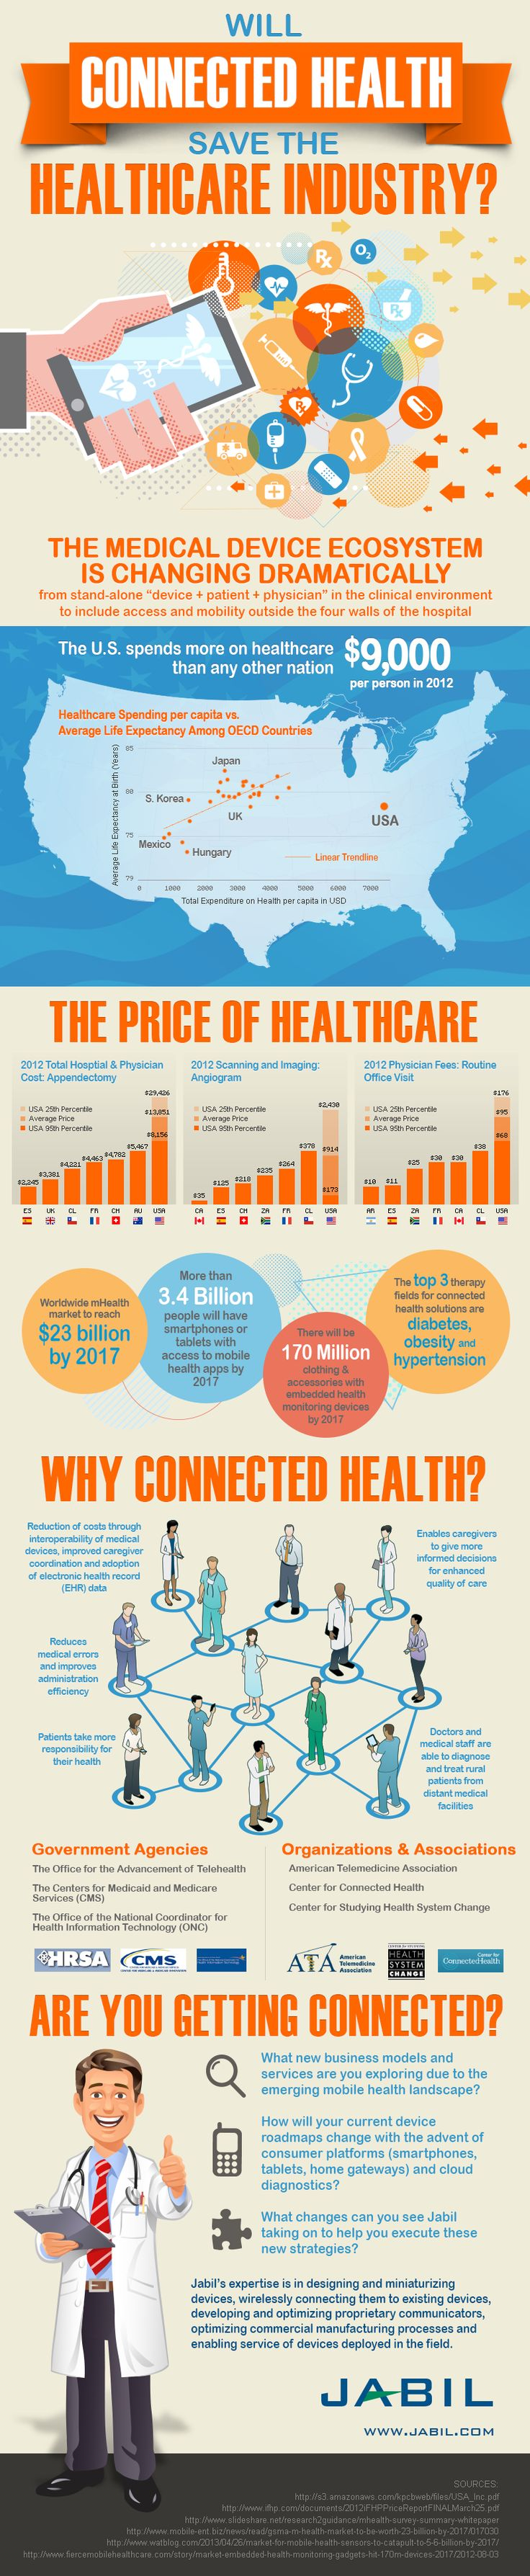 Will #Connected Health Save the #Healthcare Industry? The medical device ecosystem is changing dramatically to include access and mobility outside the hospital setting #ehealth